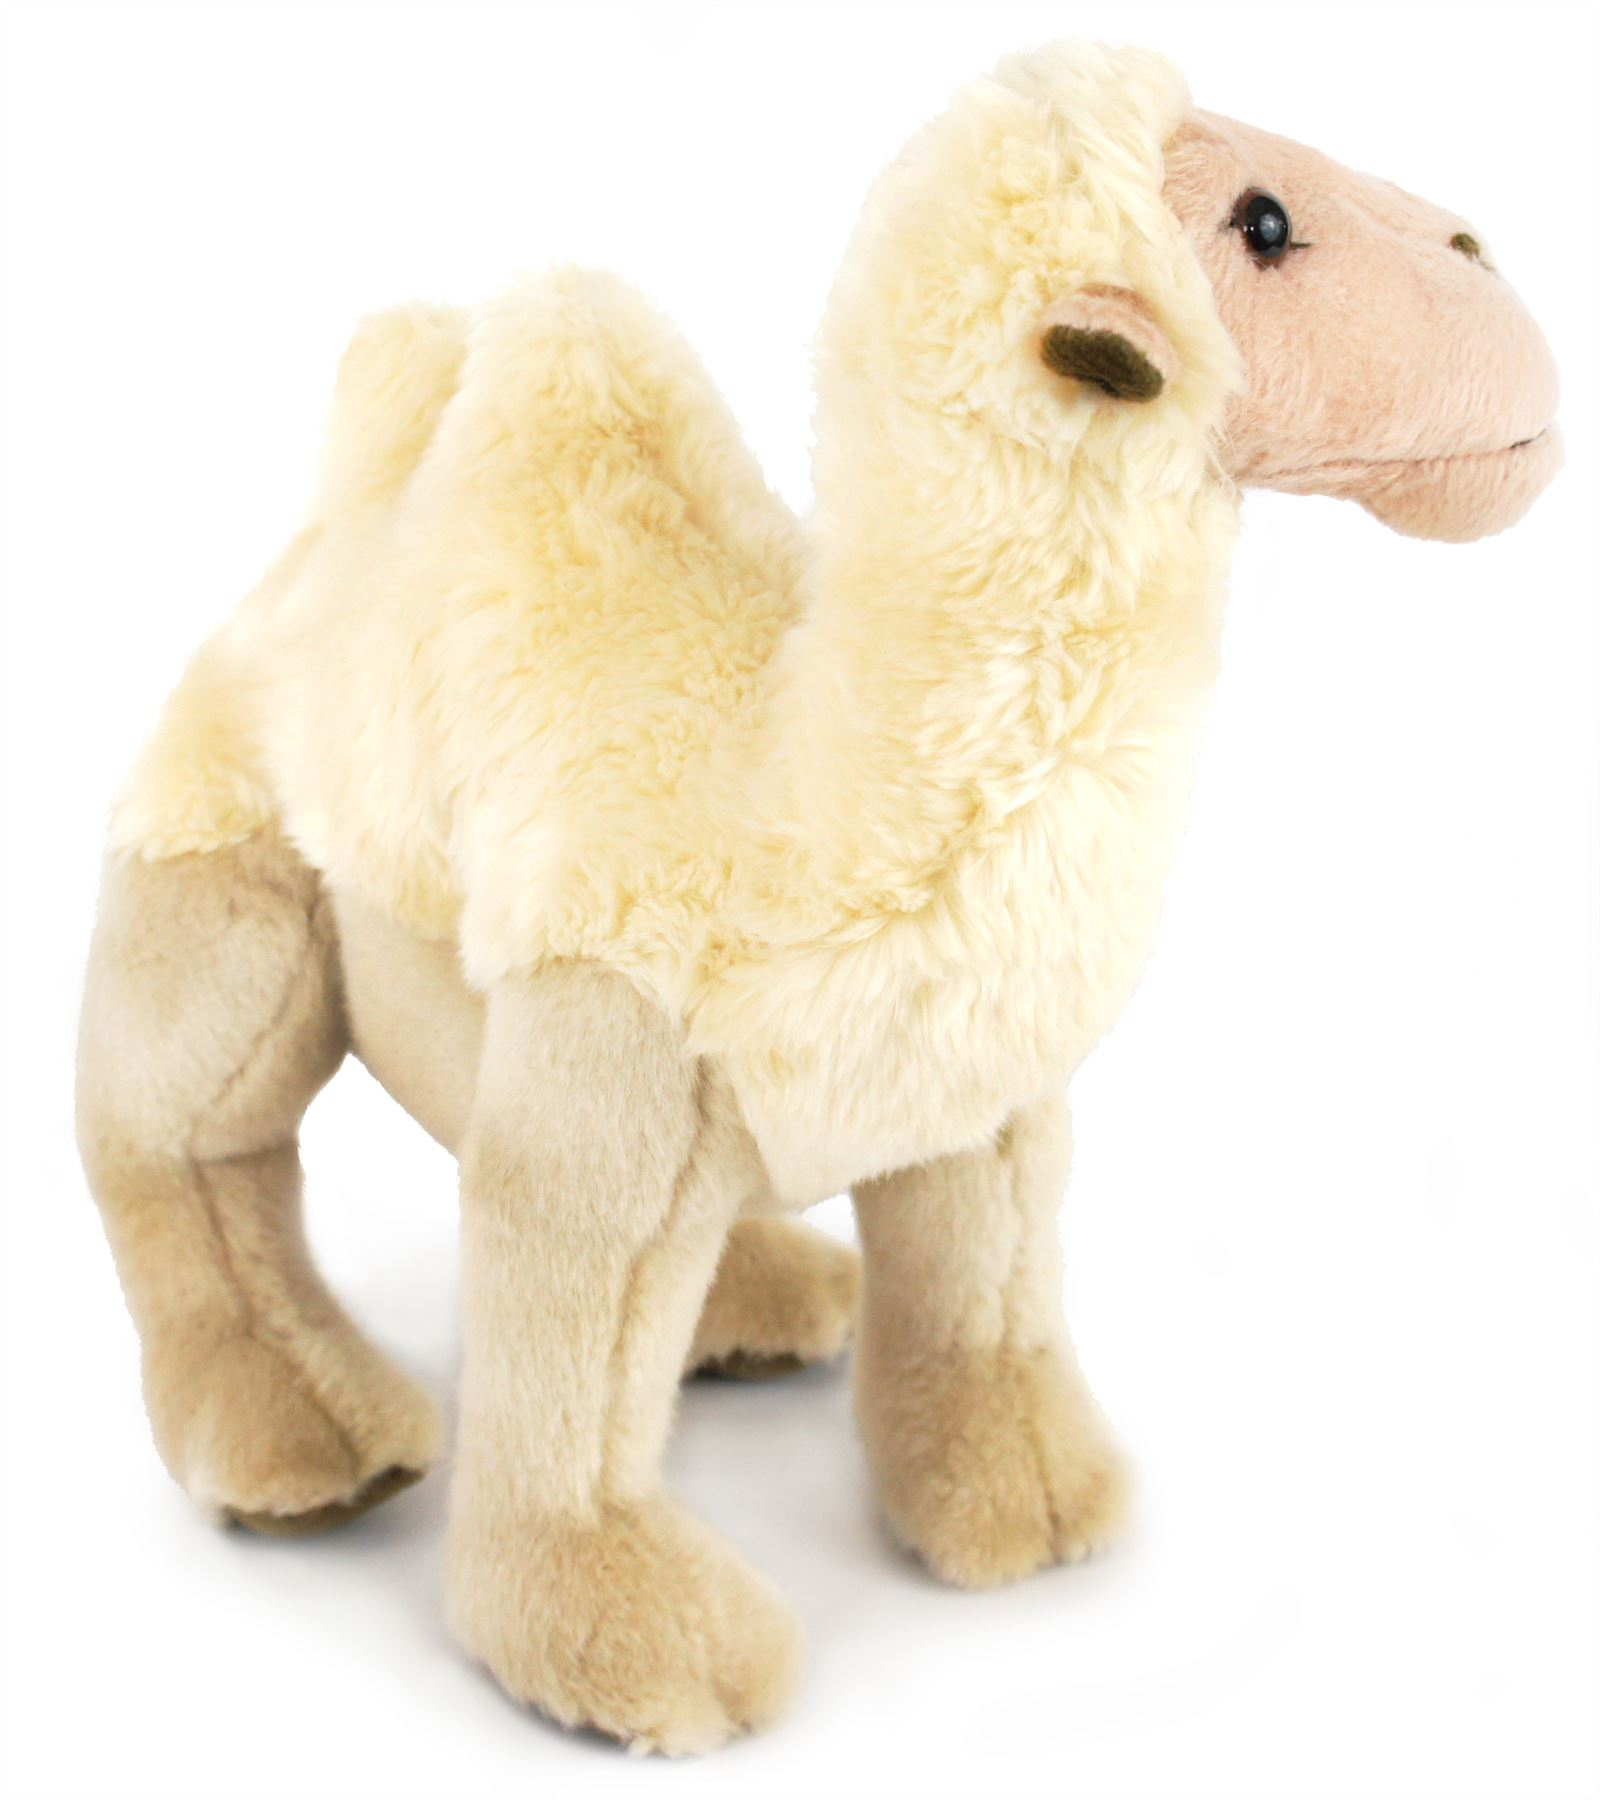 Callie the Camel12 Inch Stuffed Animal PlushBy Tiger Tale Toys